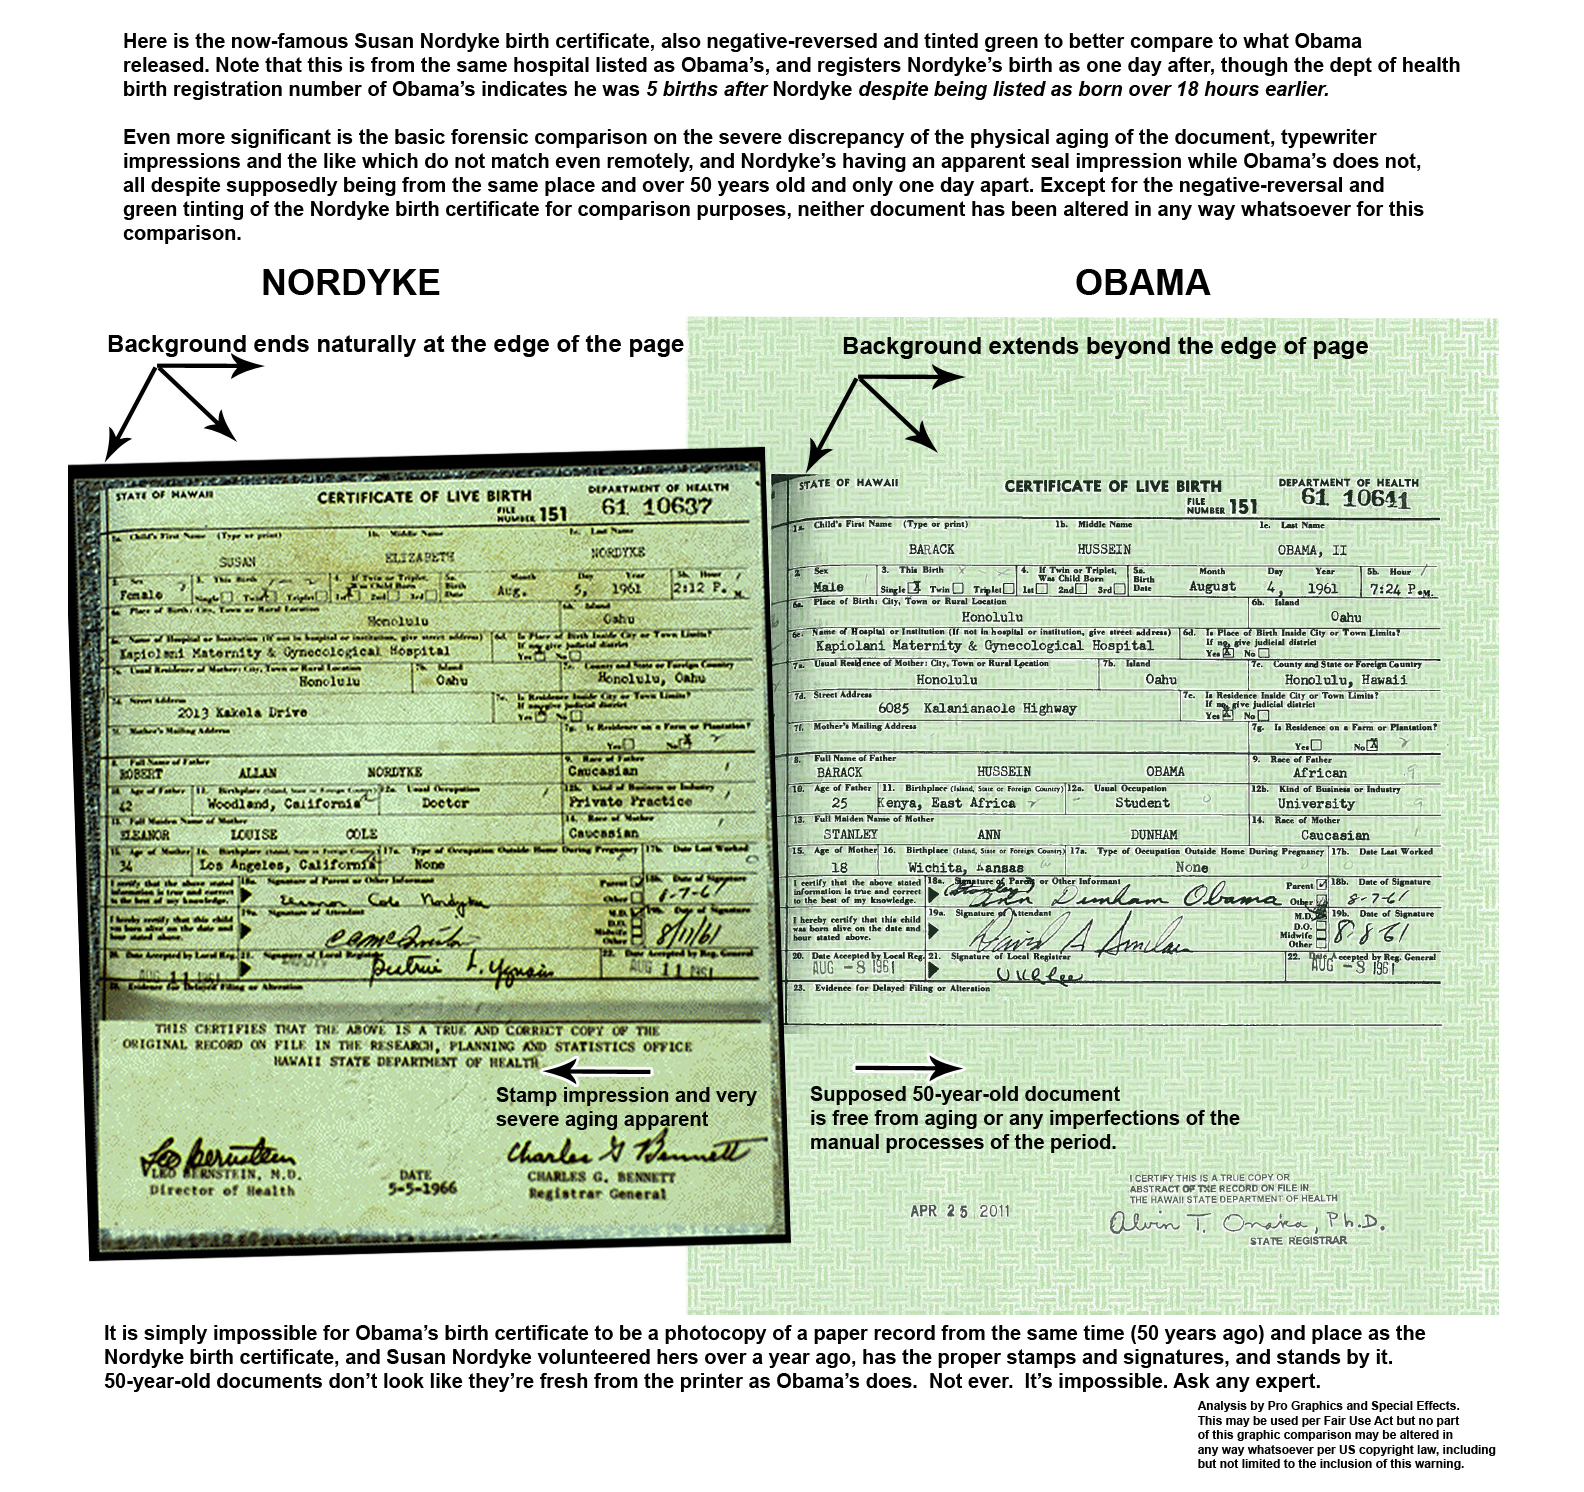 Nordyke hawaiian birth certificate compared to president obamas nordyke hawaiian birth certificate compared to president obamas aiddatafo Images